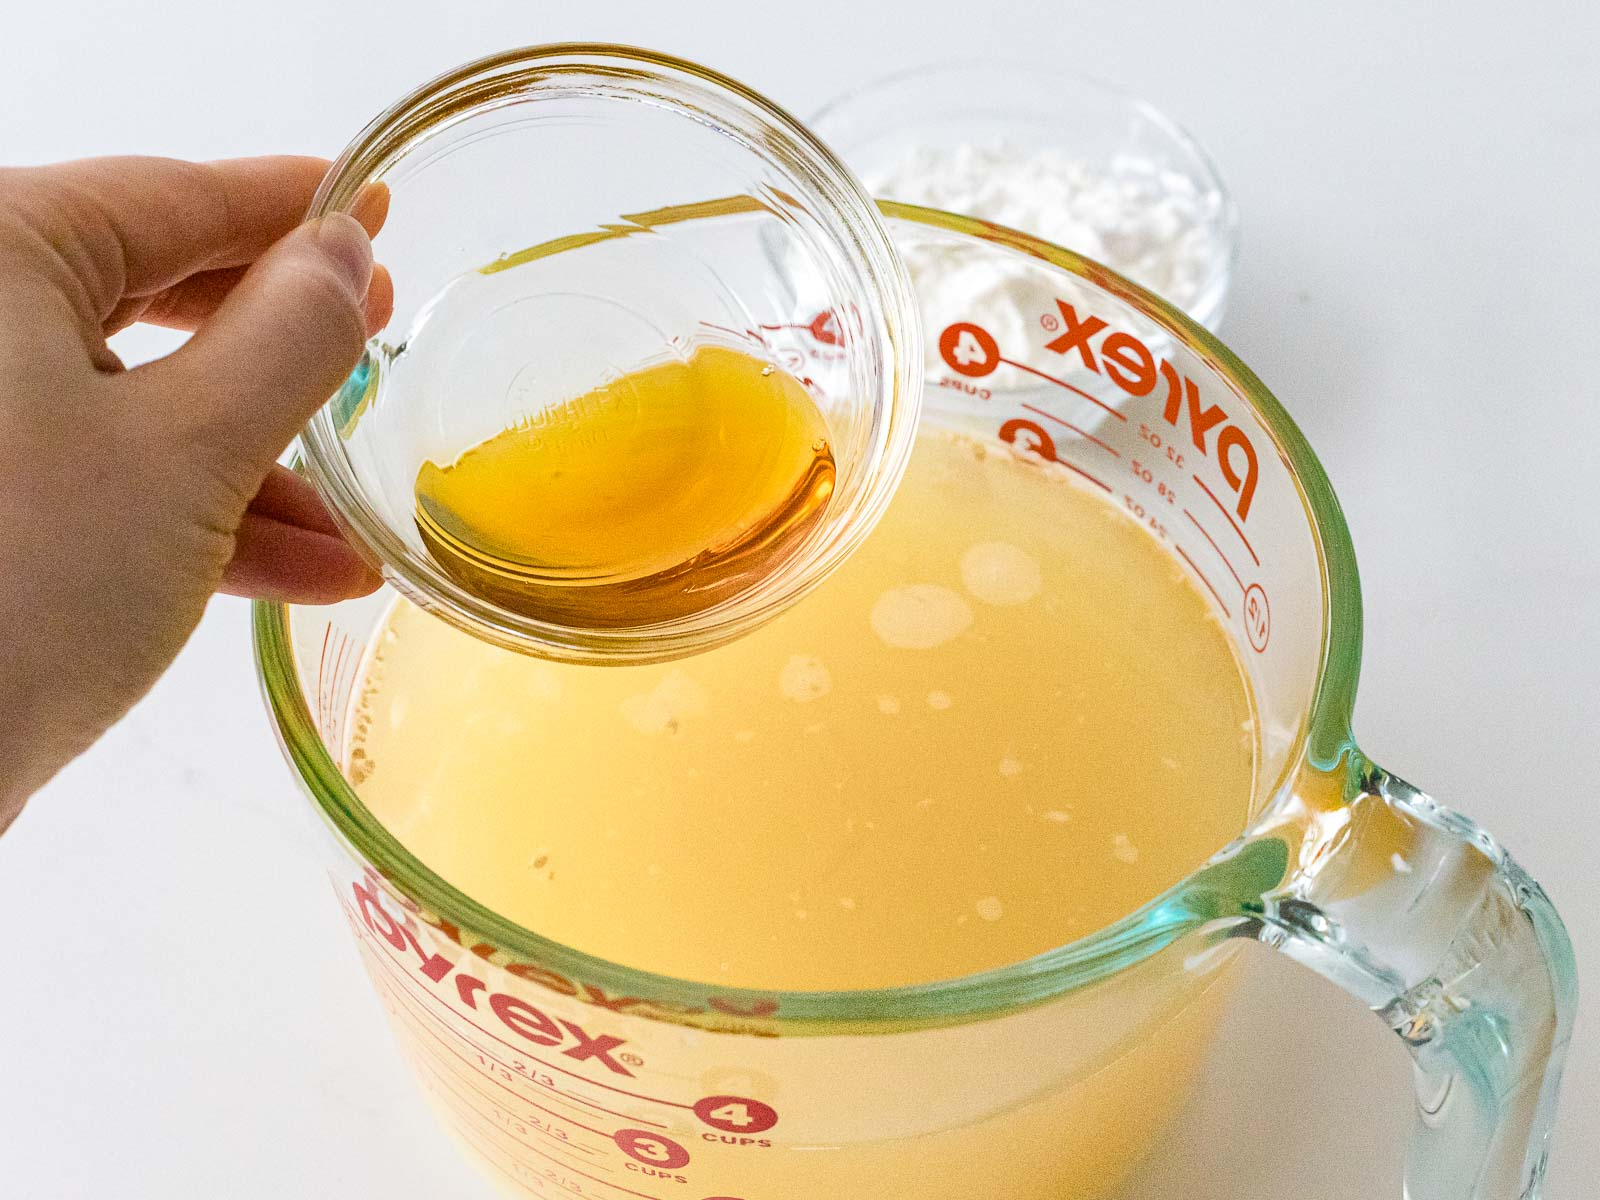 sesame oil added to stock in a glass measuring cup